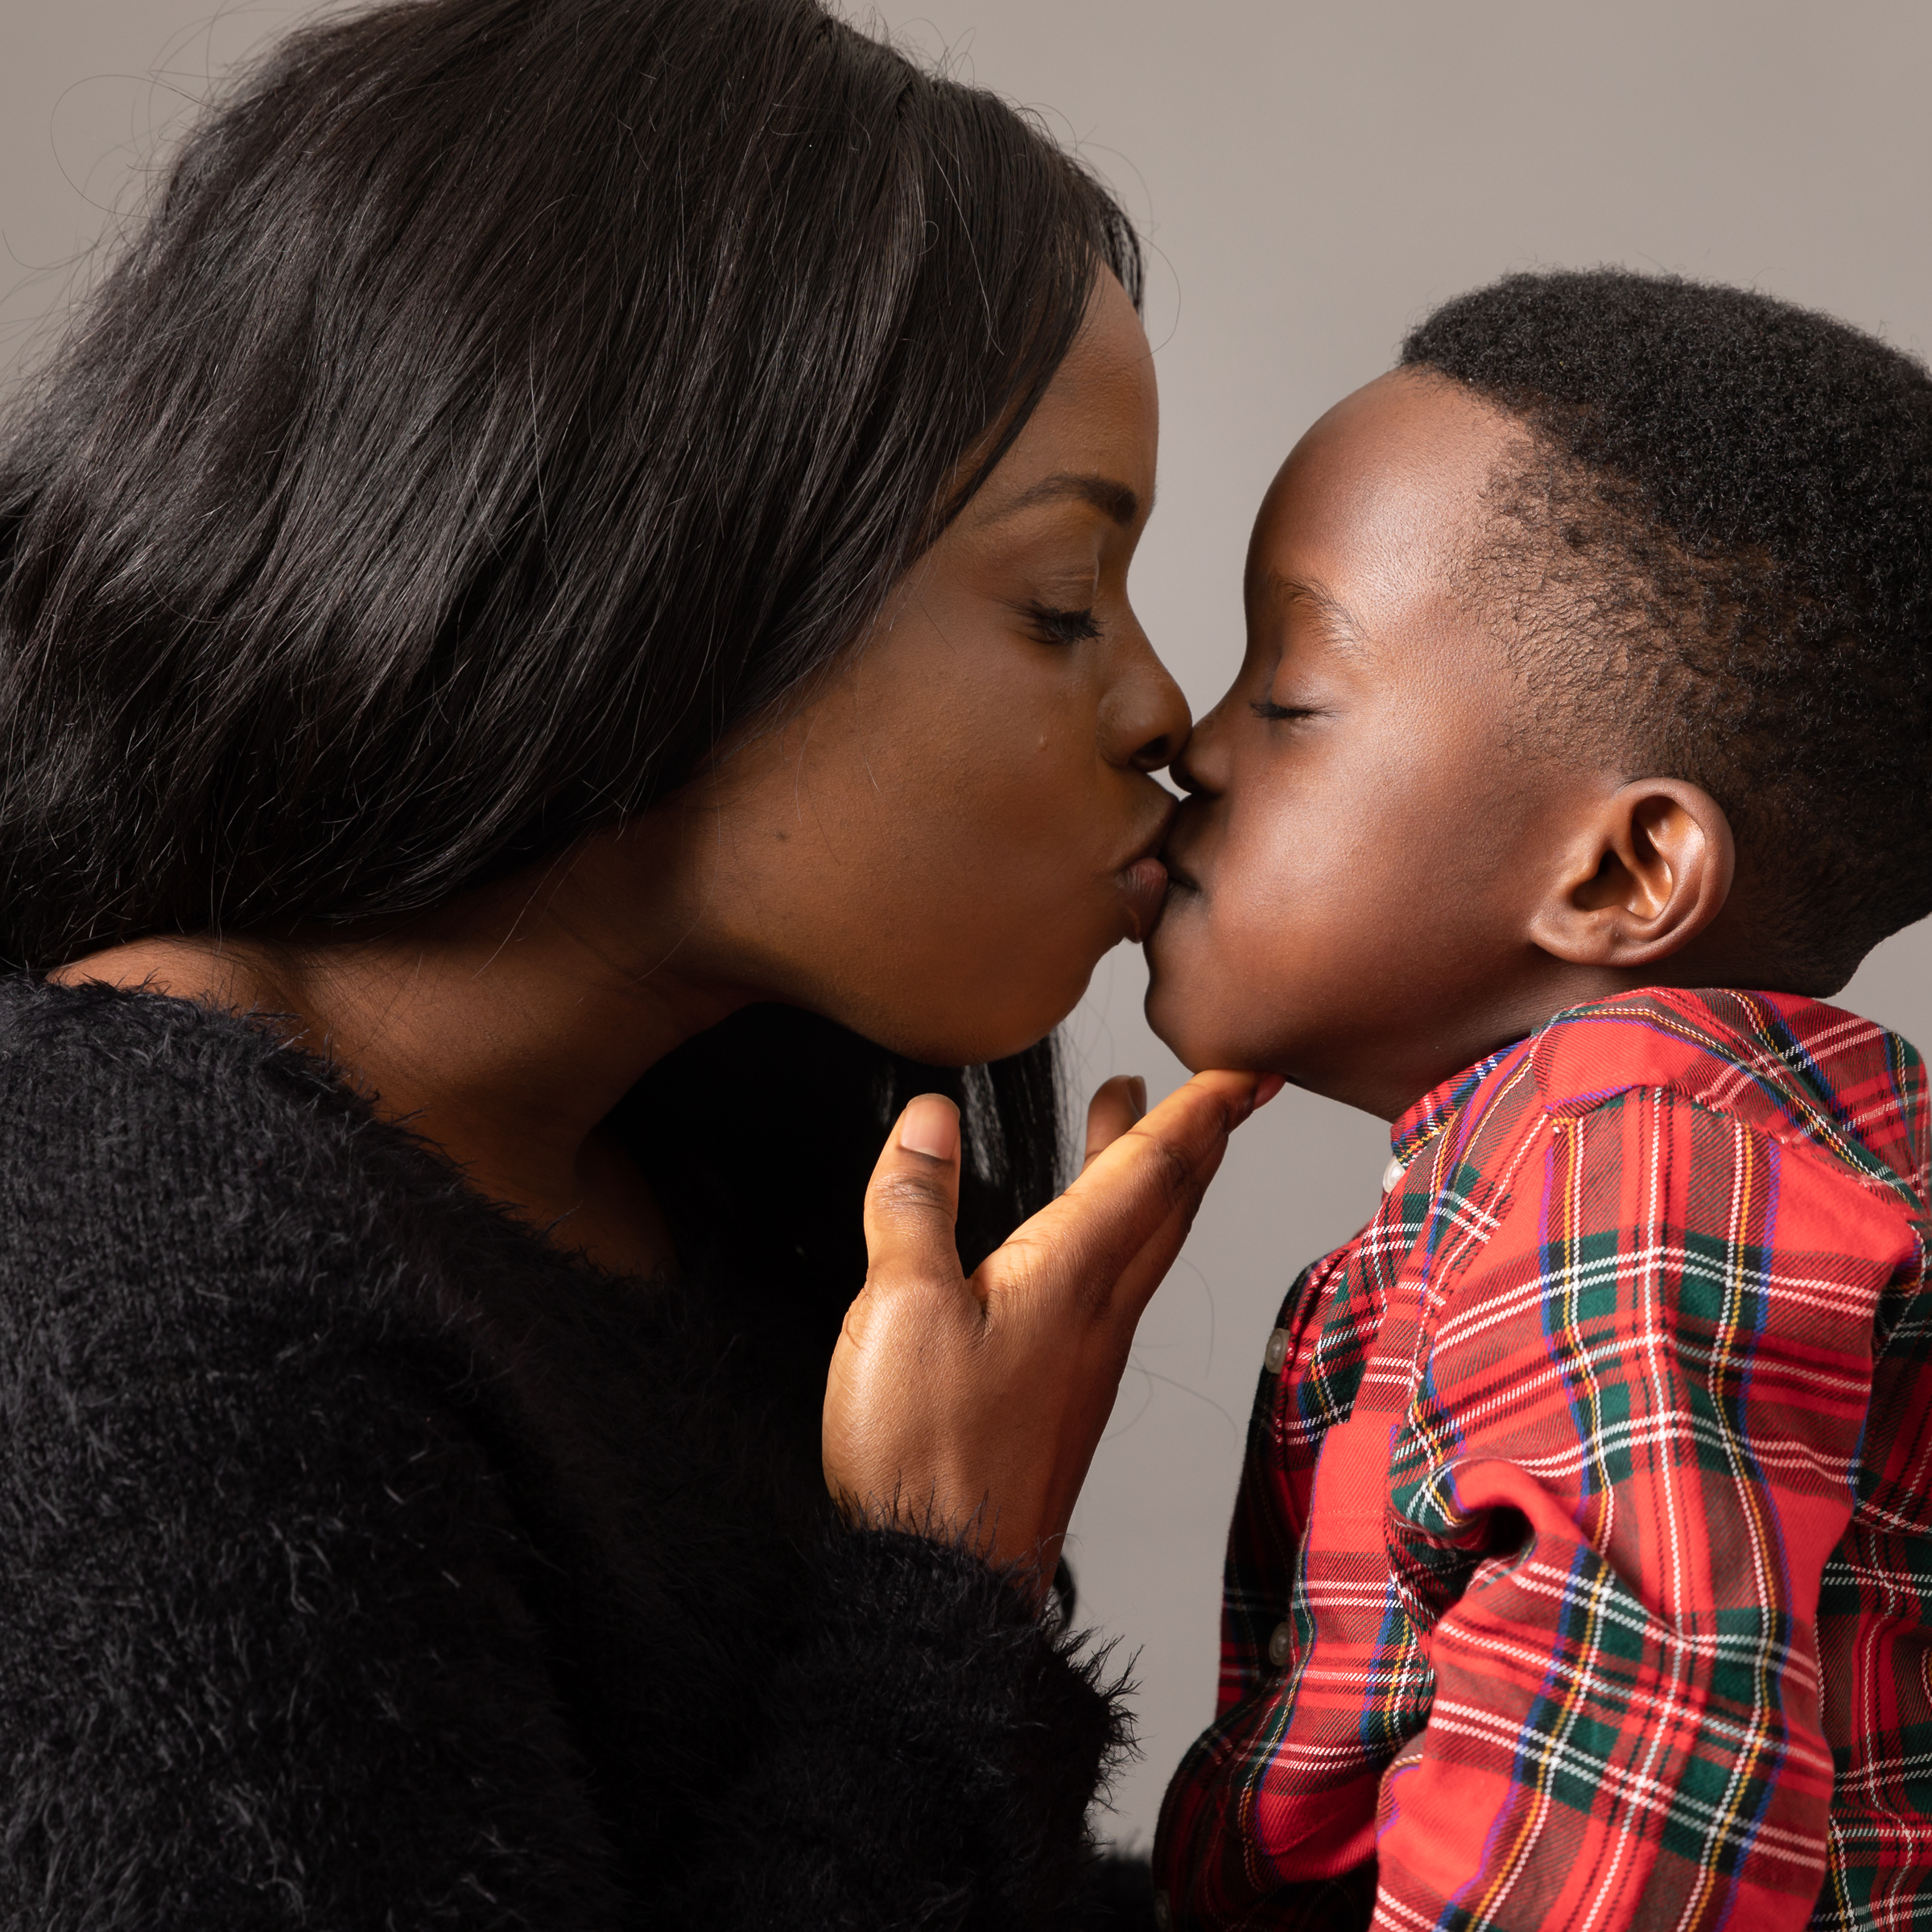 mother-son-kiss-london-studio.jpg